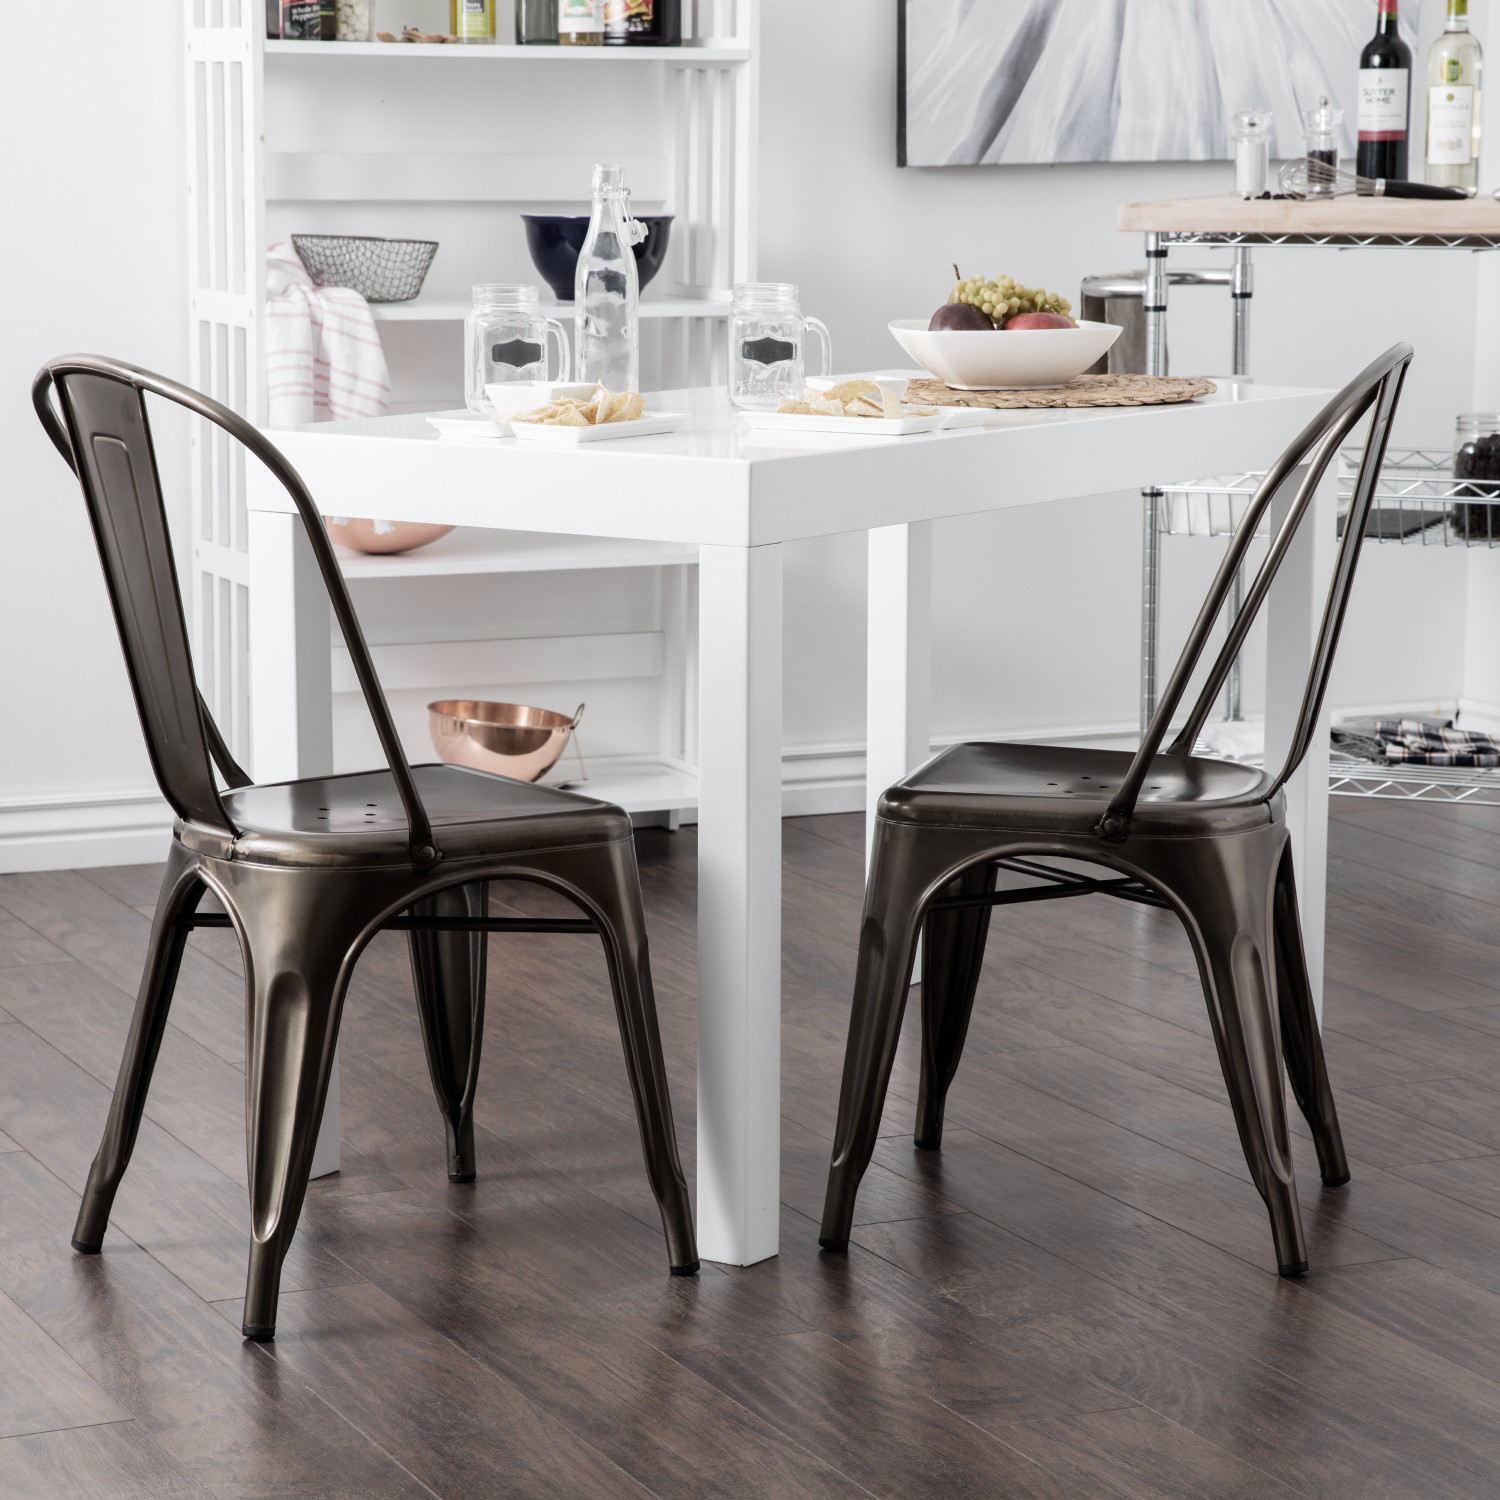 Set Of 4 Vintage Style Stackable Dining Chairs